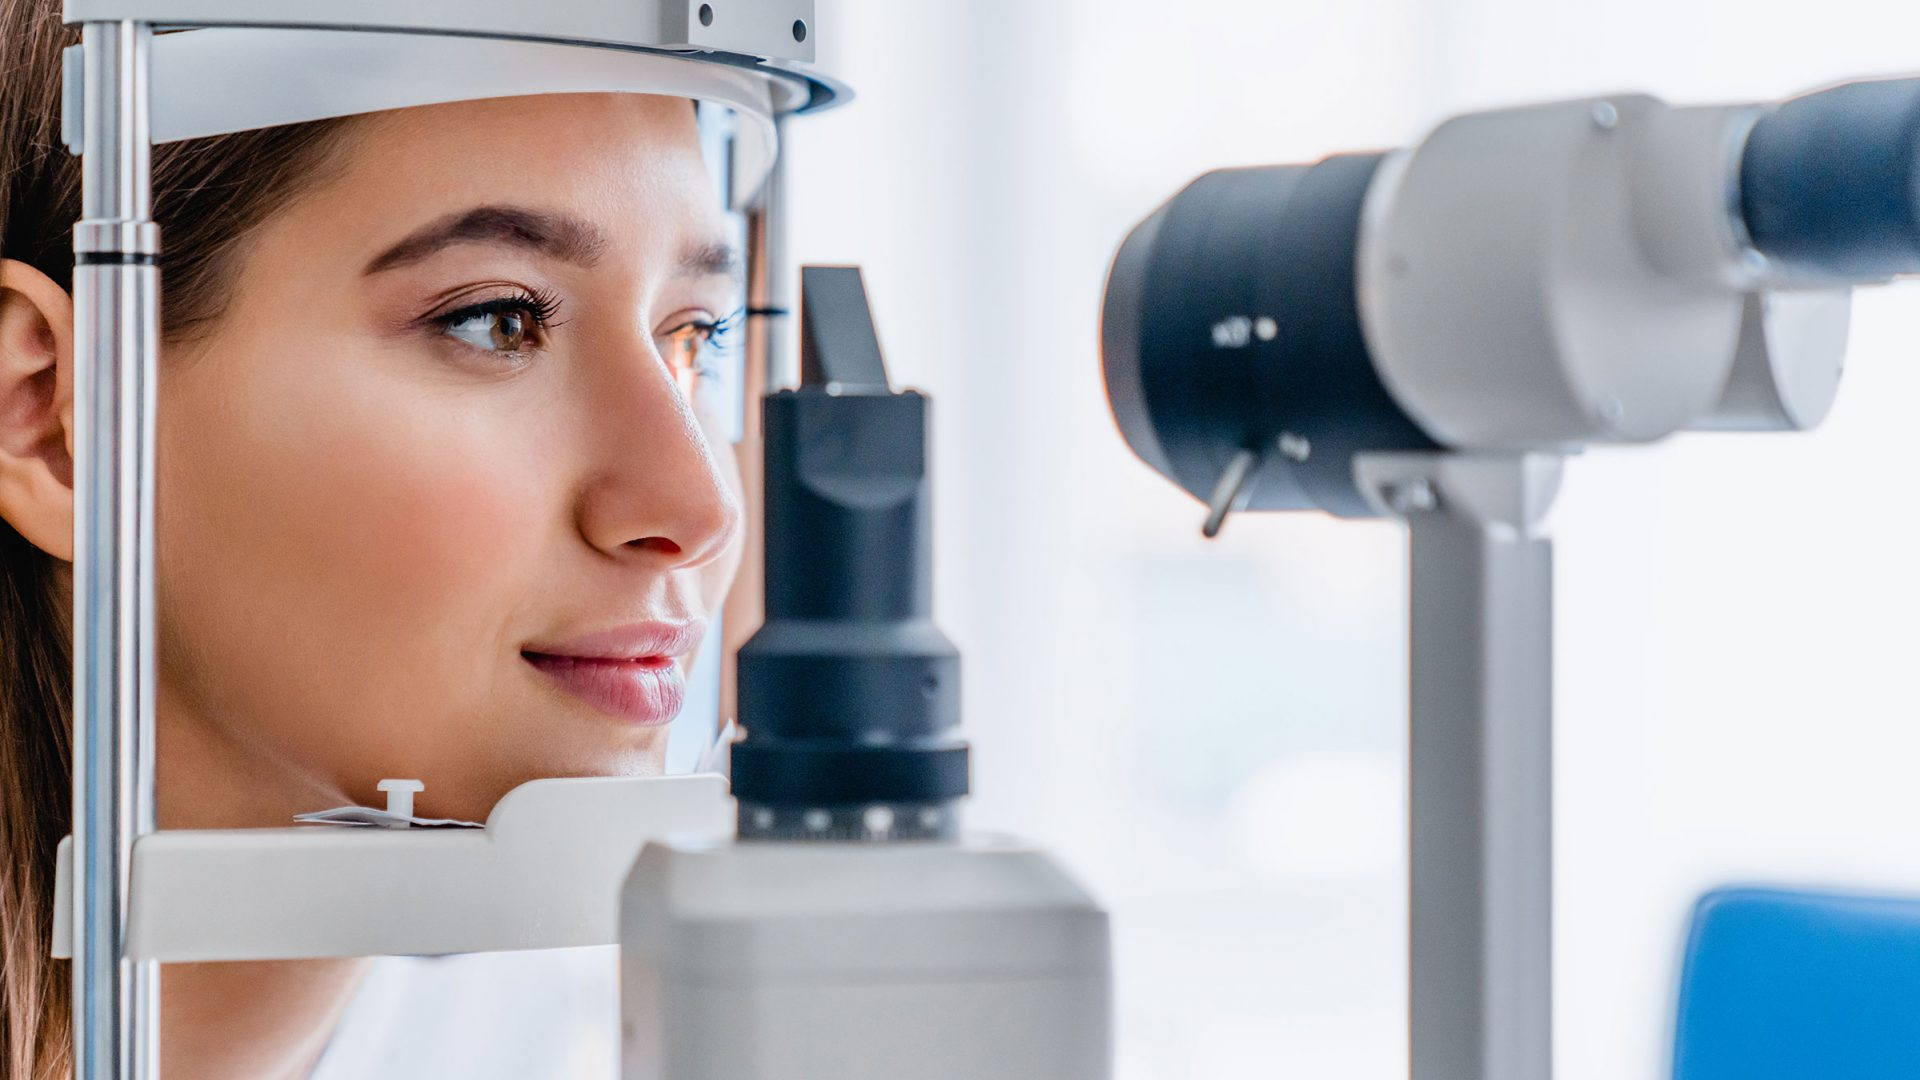 woman having her eyes examined using optometry equipment